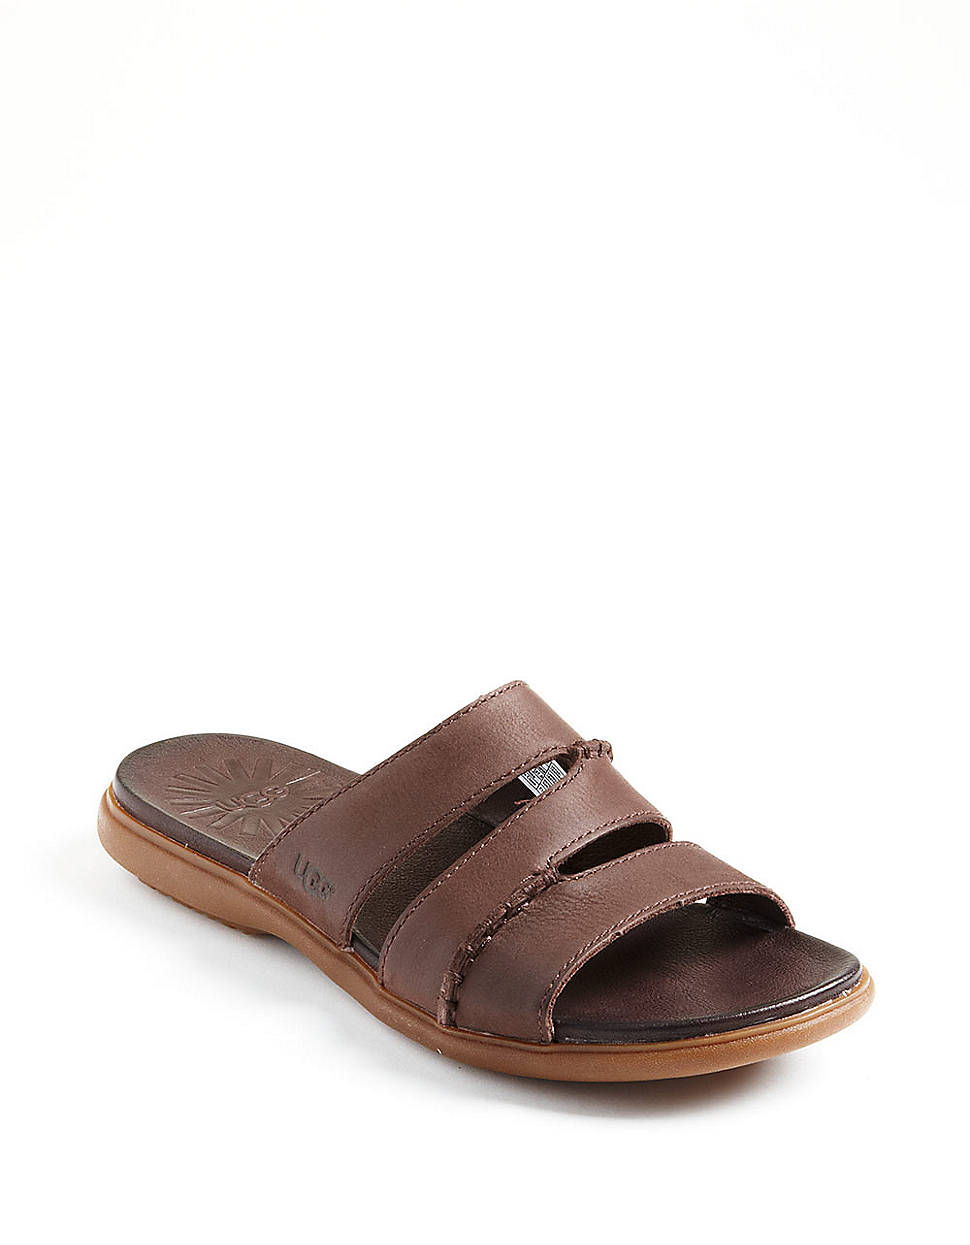 0850aa5f47ae7 Ugg Rineland Leather Sandals in Brown for Men